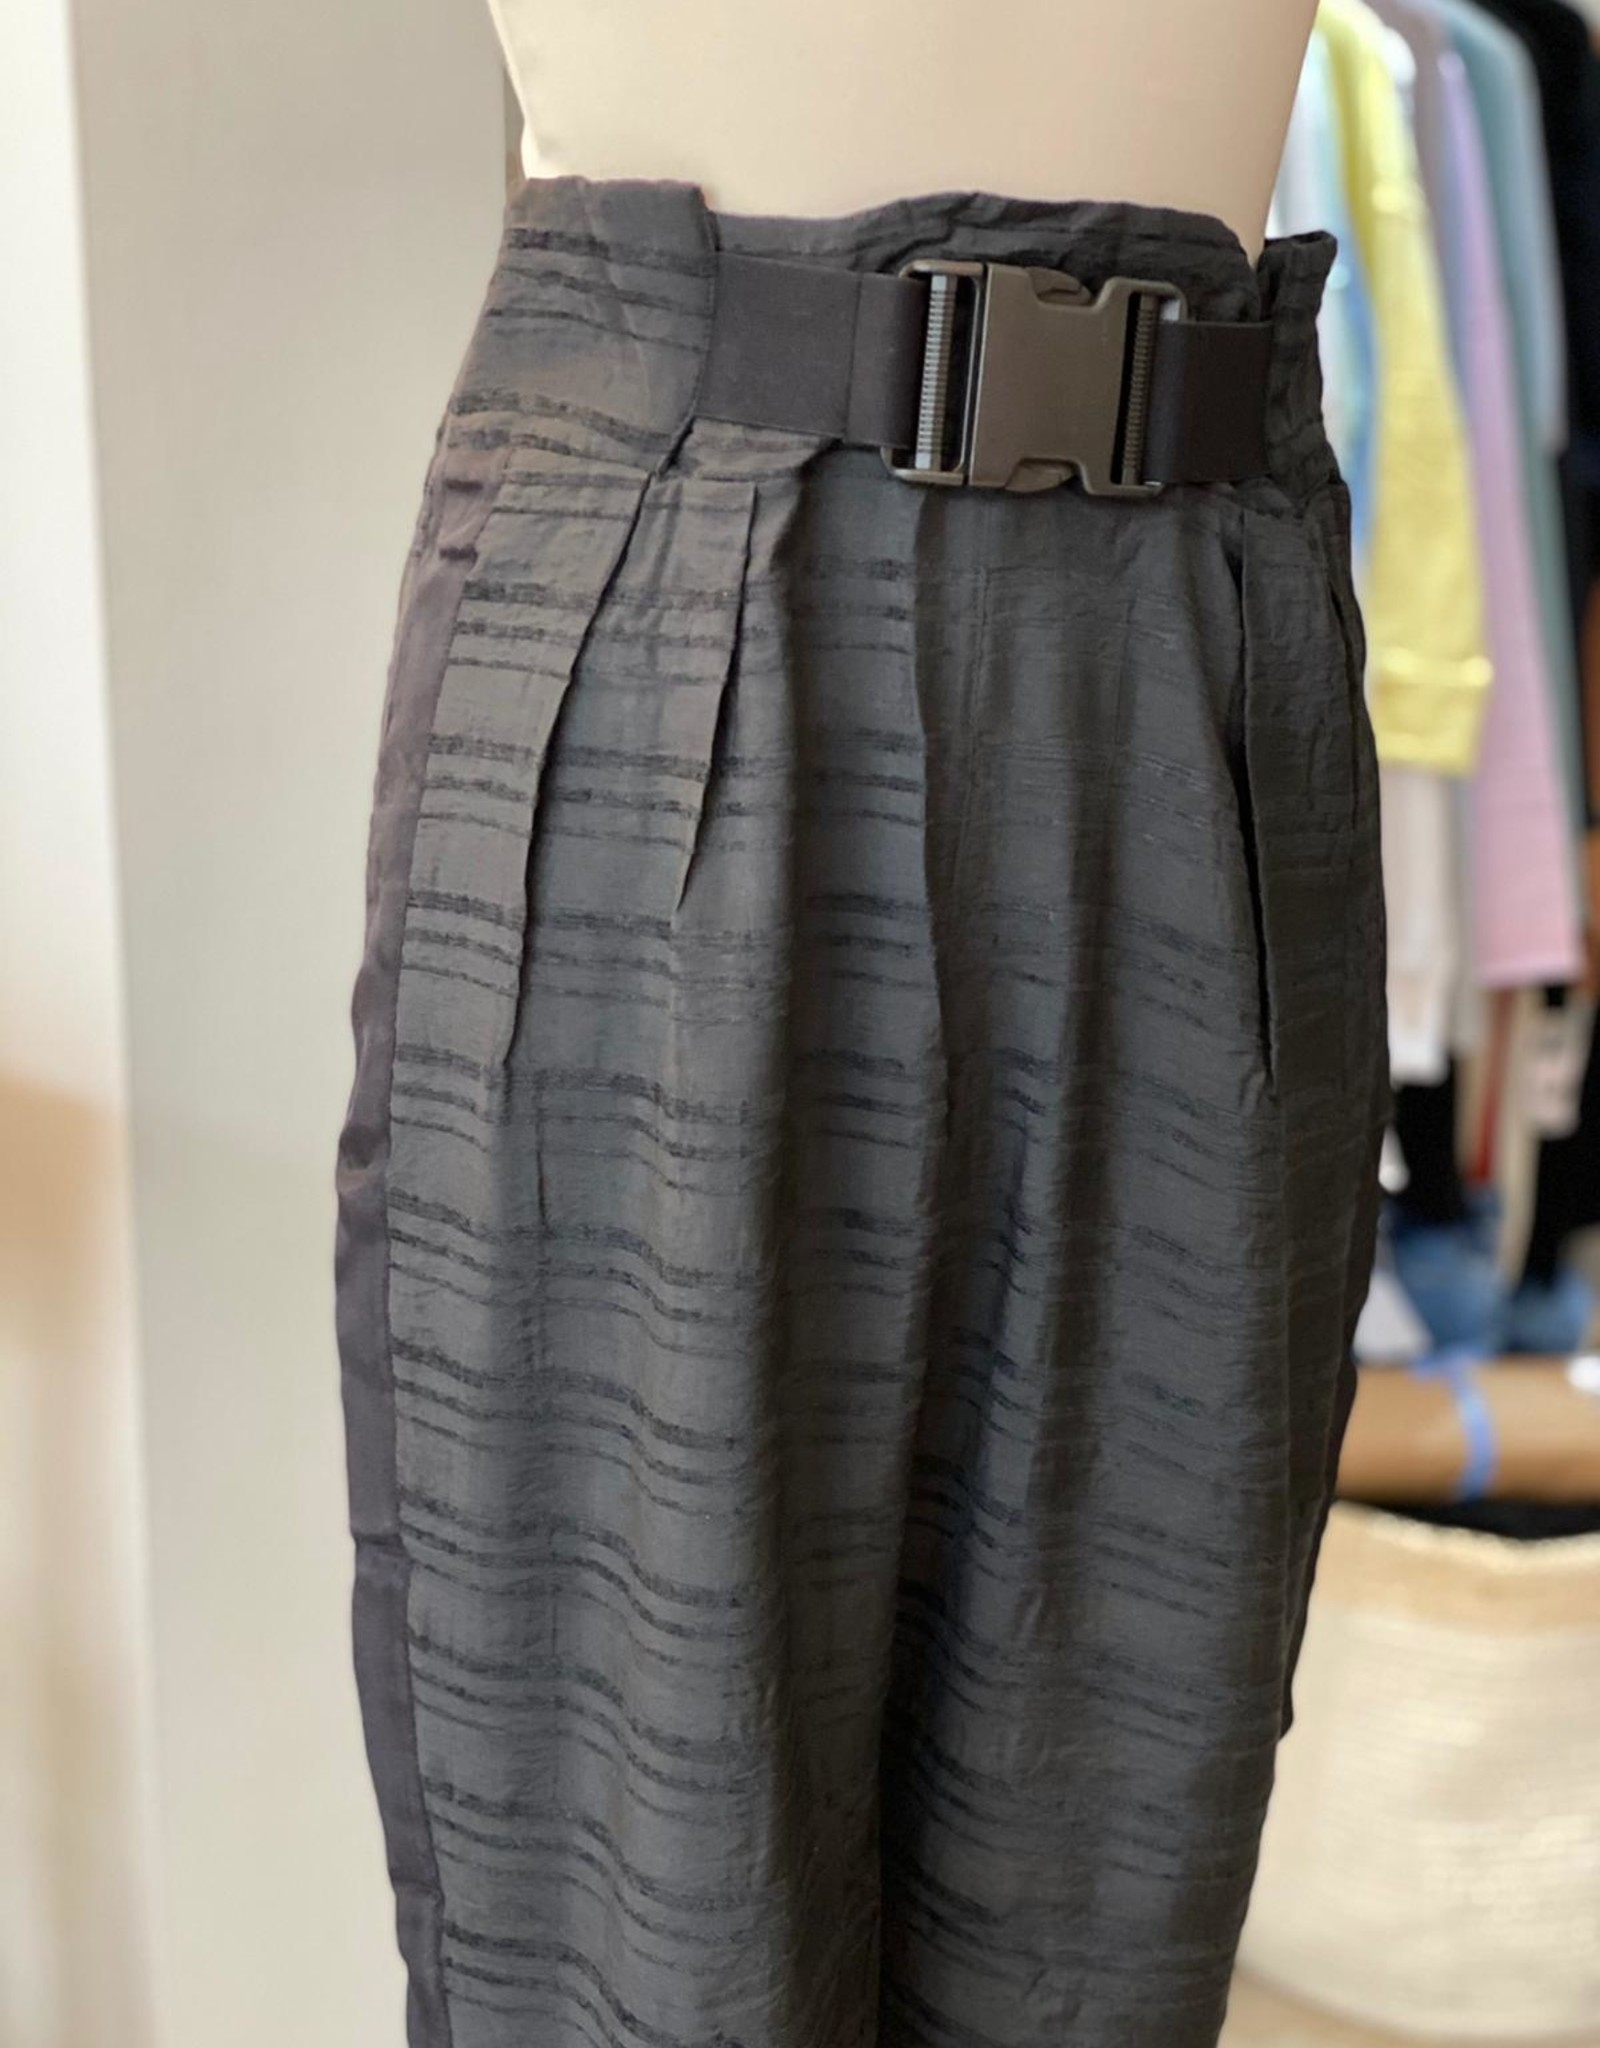 NU DANISH GRY LINED CIGAR TROUSERS WITH BELT NU 6768-10